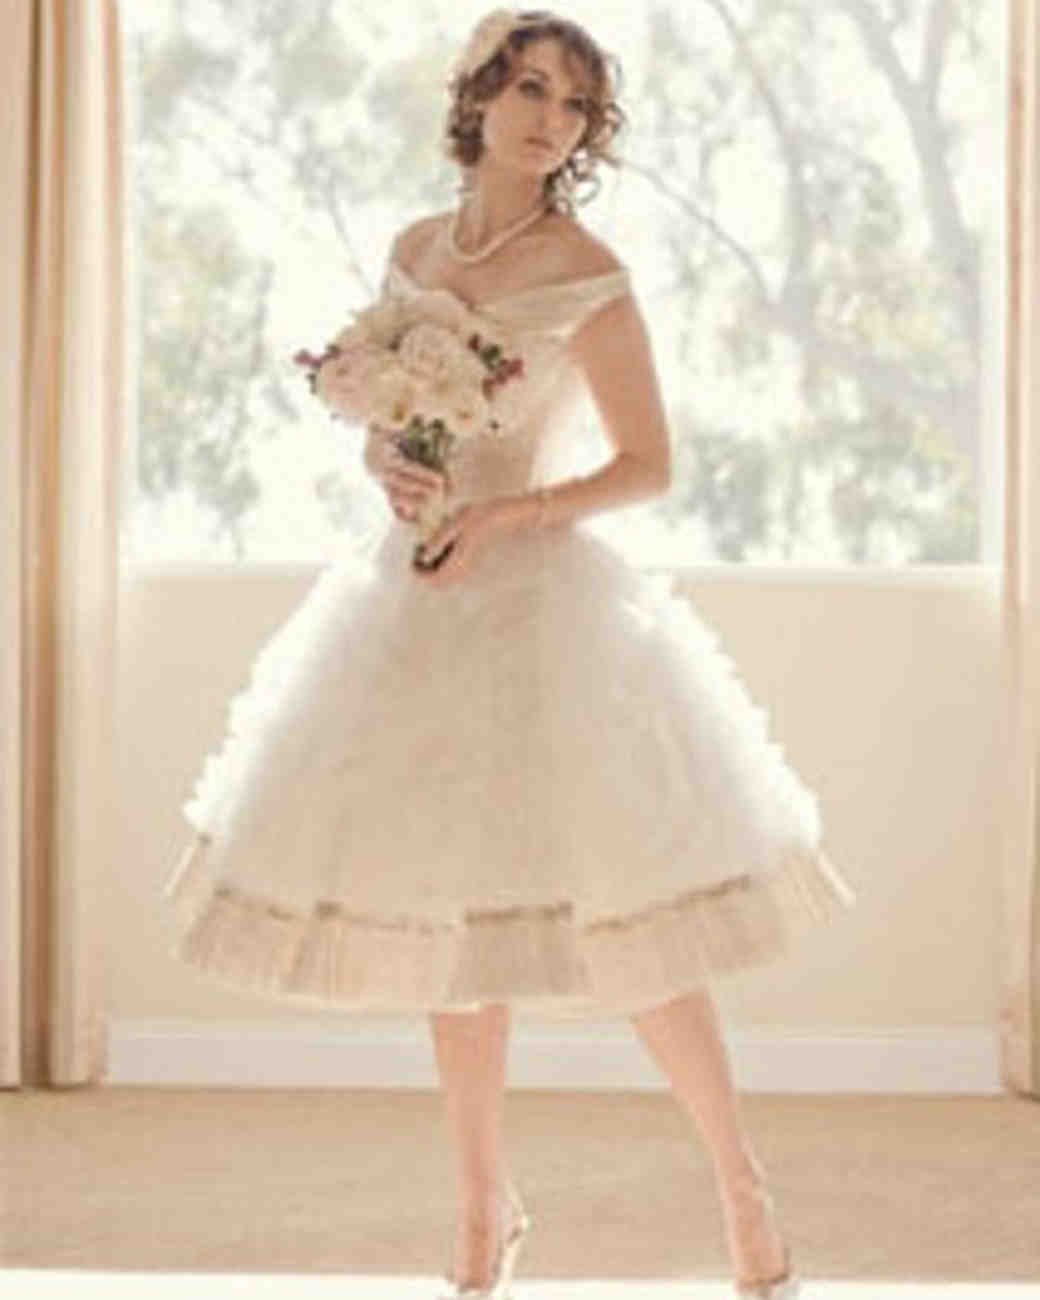 etsy_joan_shum_wedding_gown.jpg